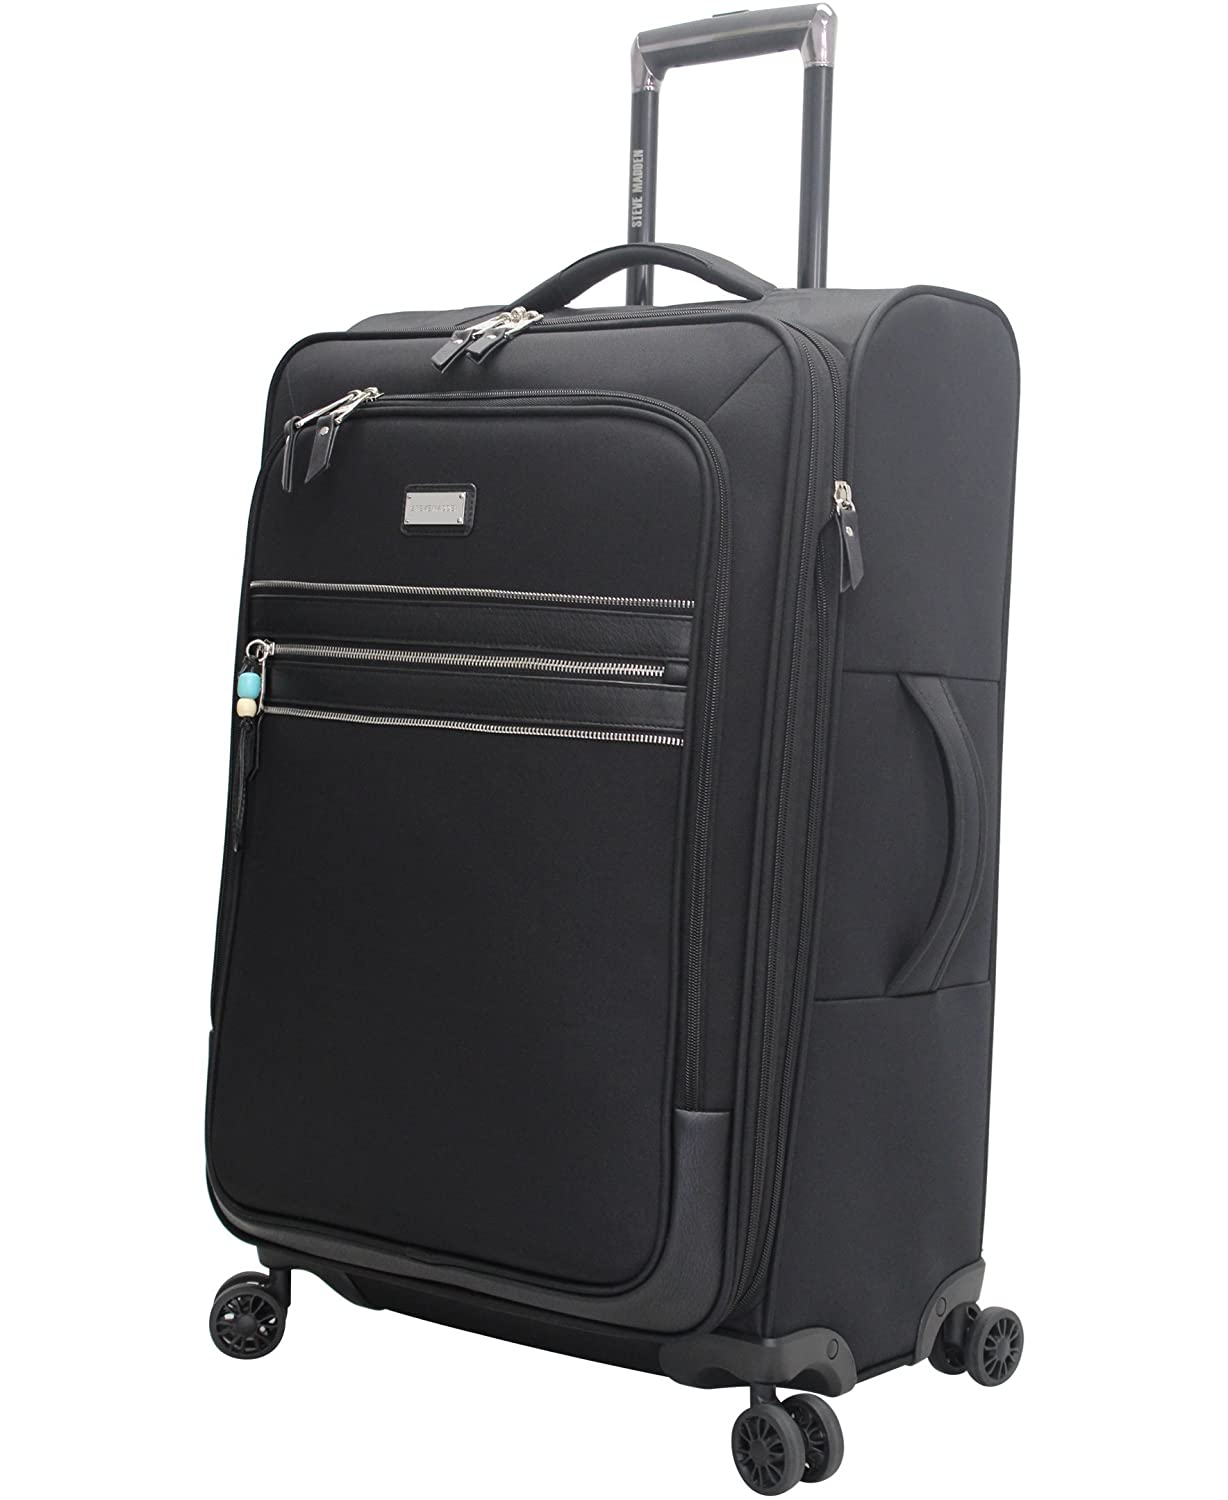 Image of Luggage Steve Madden Large Patchwork Expandable Luggage With Spinner Wheels